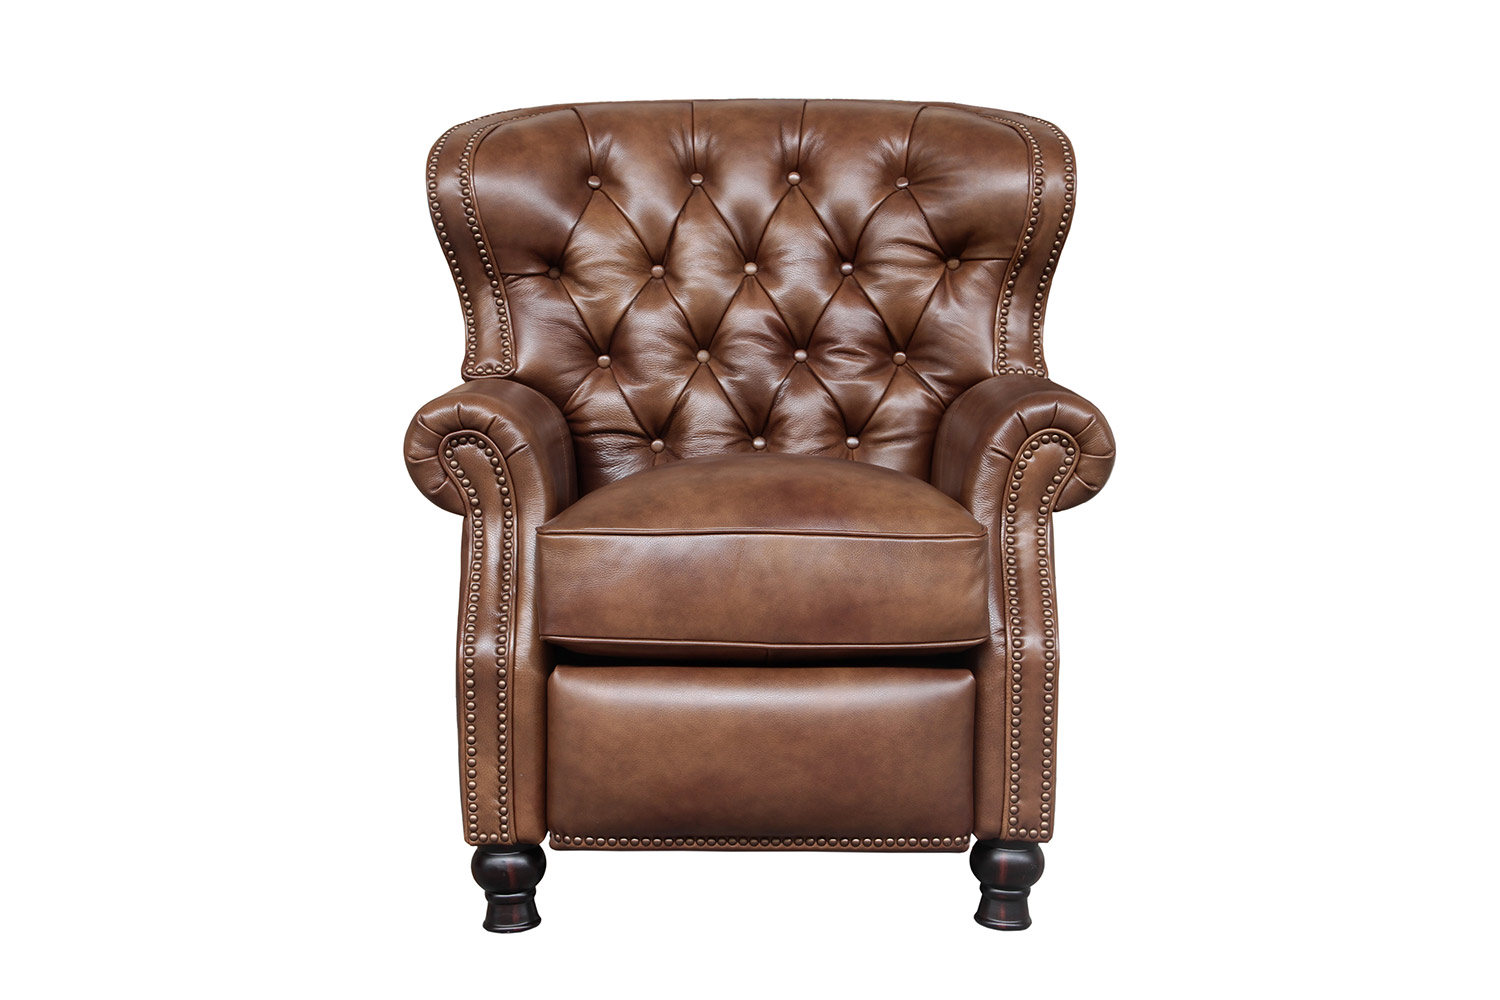 Barcalounger Presidential Recliner Chair - Wenlock Tawny/All Leather